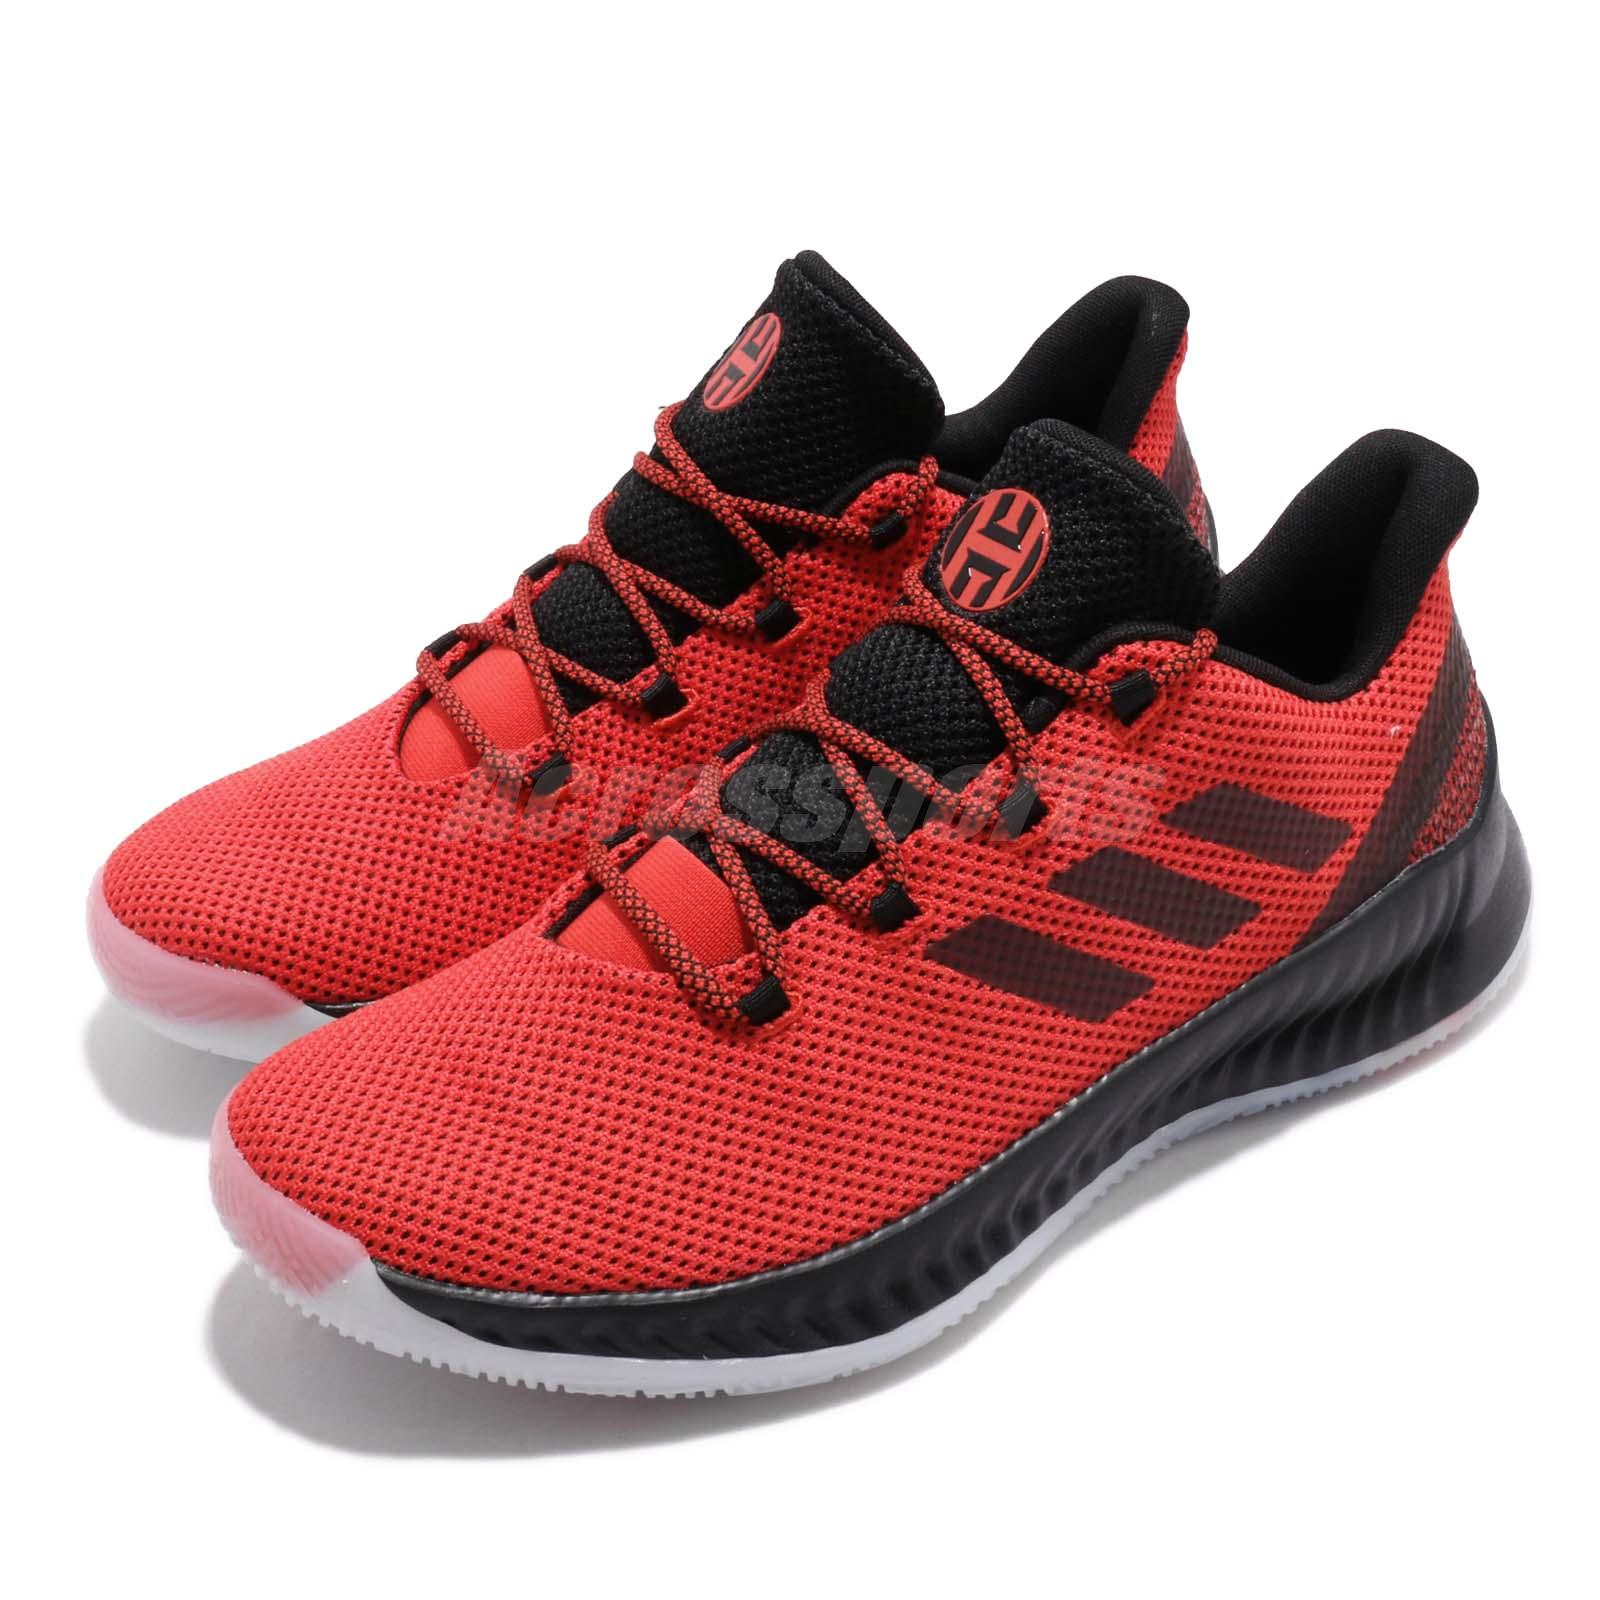 9d7f09dd15bd Details about adidas Harden B E X Geek Up James Red Black Men Basketball  Shoes Sneakers EE7197